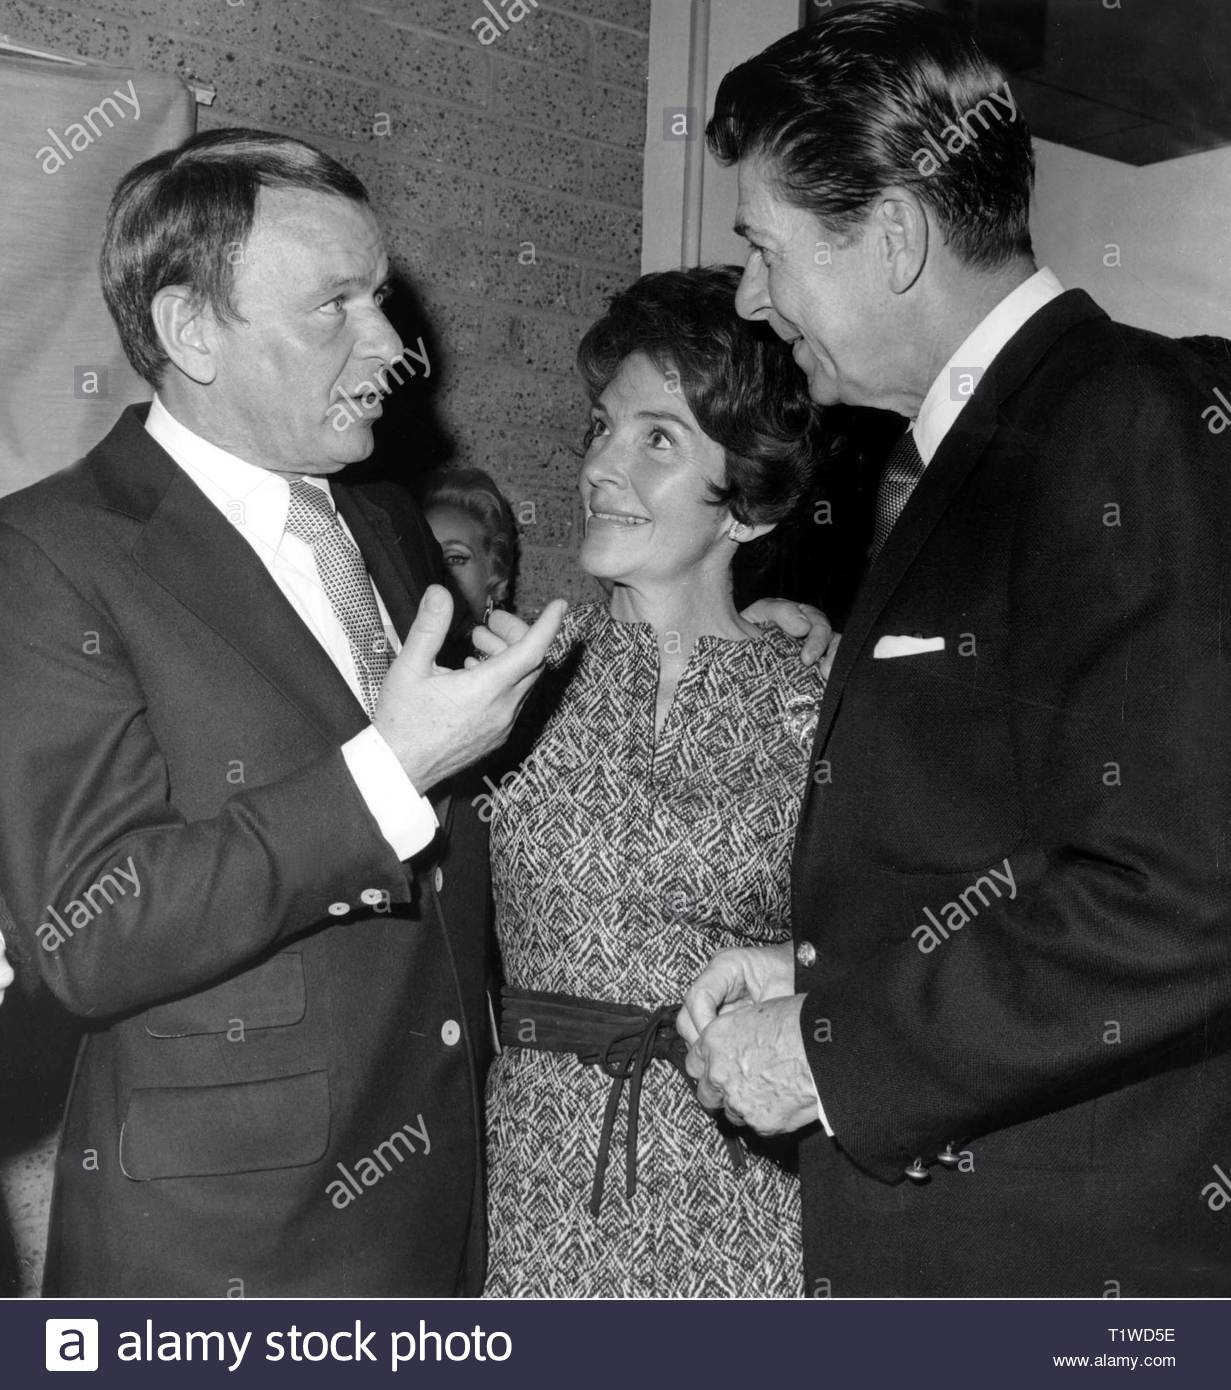 Image result for b & w photo of the reagan and sinatra and dean martin